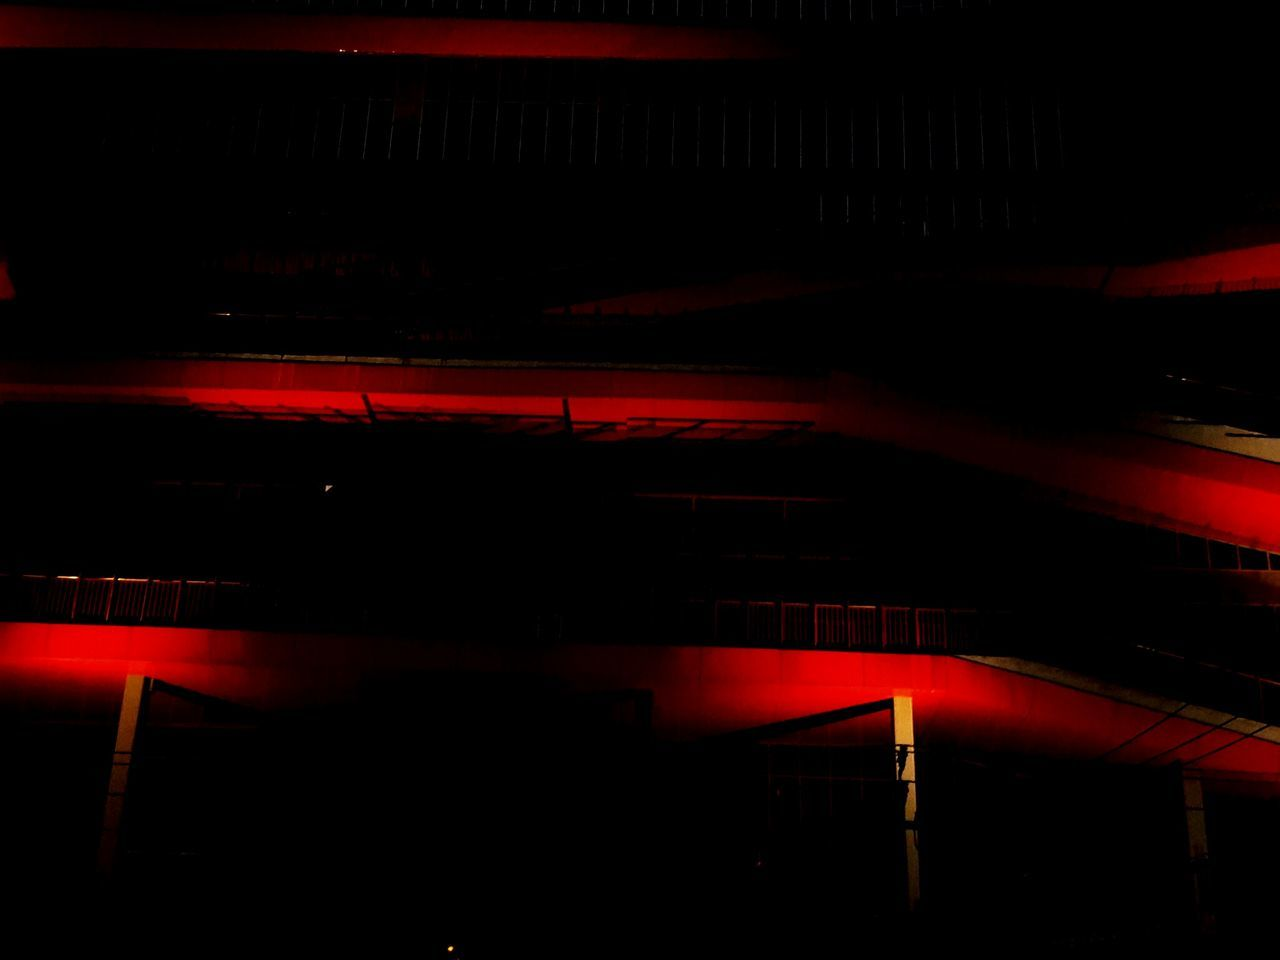 illuminated, night, transportation, red, underground, no people, parking garage, indoors, built structure, architecture, neon, city